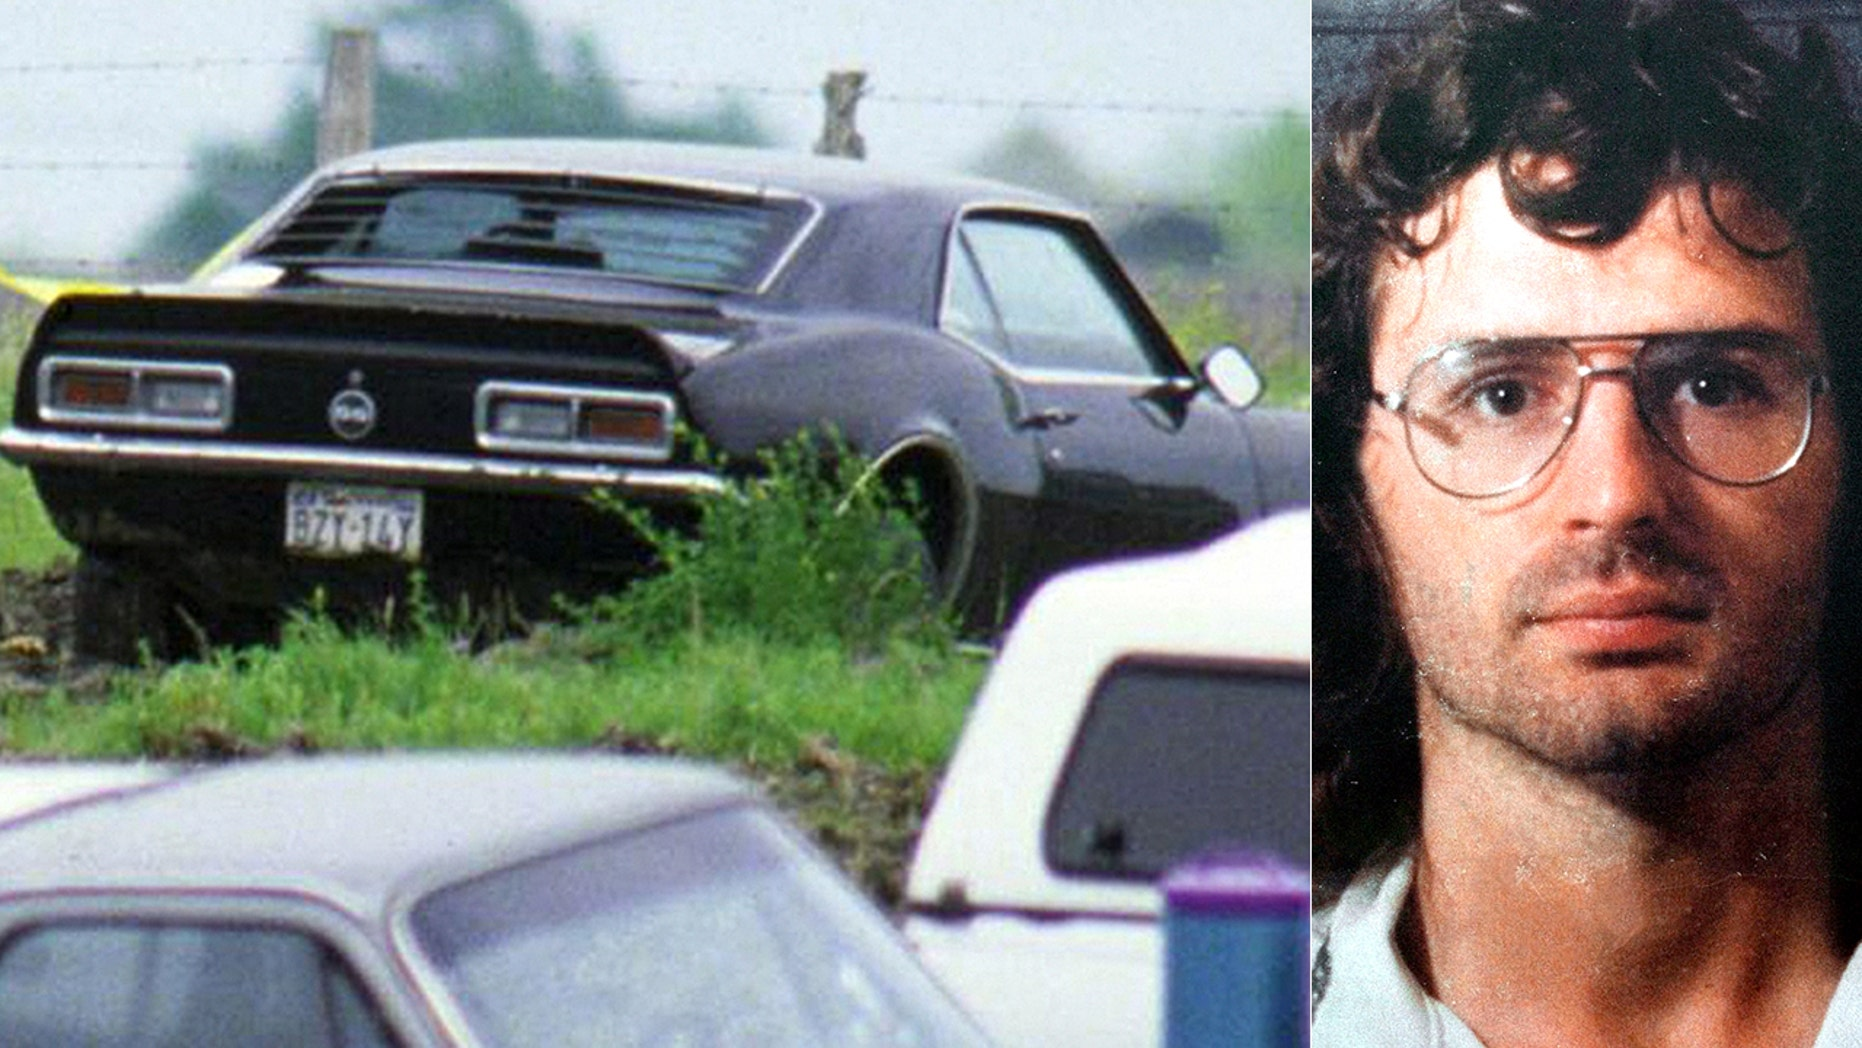 David Koreshs 1968 Chevrolet Camaro Is For Sale Report Says Fox News Ad Was Seized By Government Agents During The 1993 Siege Of